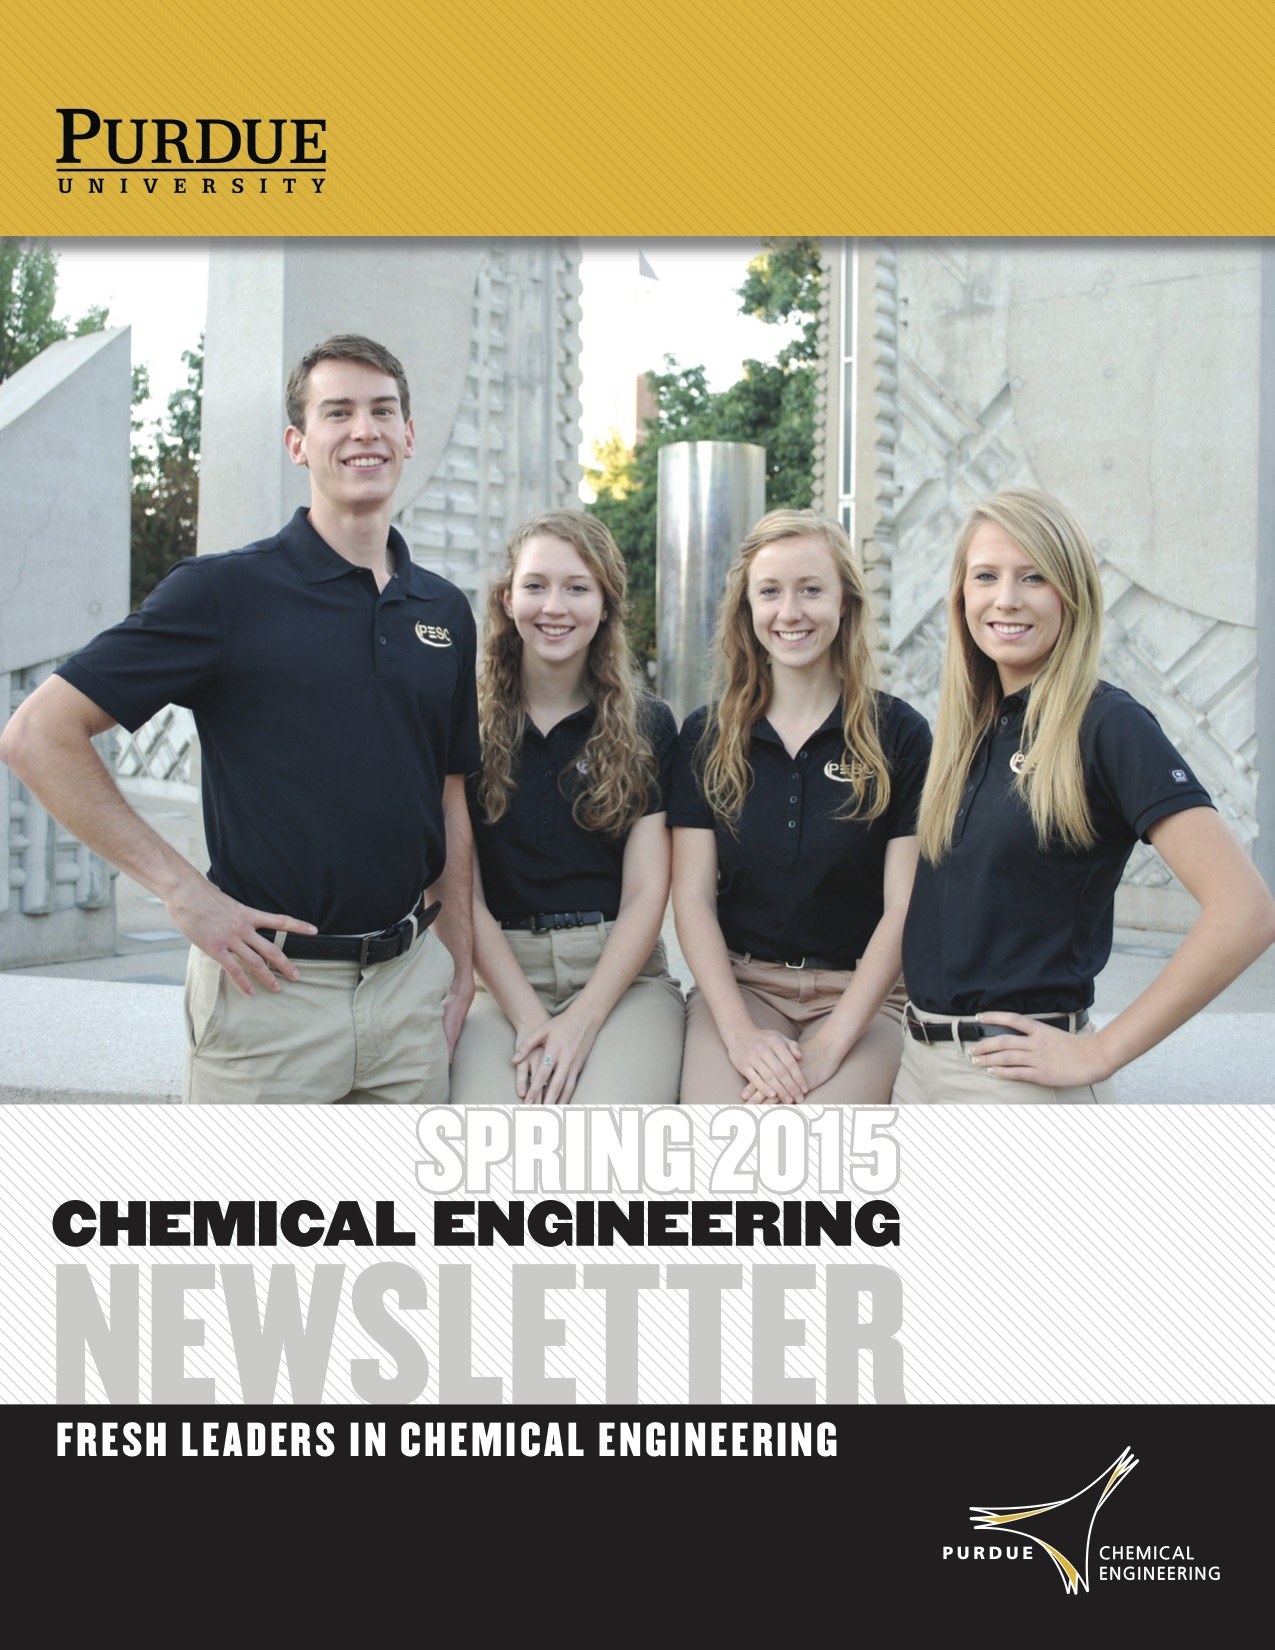 electrical engineering plan of study purdue publications : about us - davidson school of chemical engineering - purdue university electrical engineering 4 year plan ucla #9